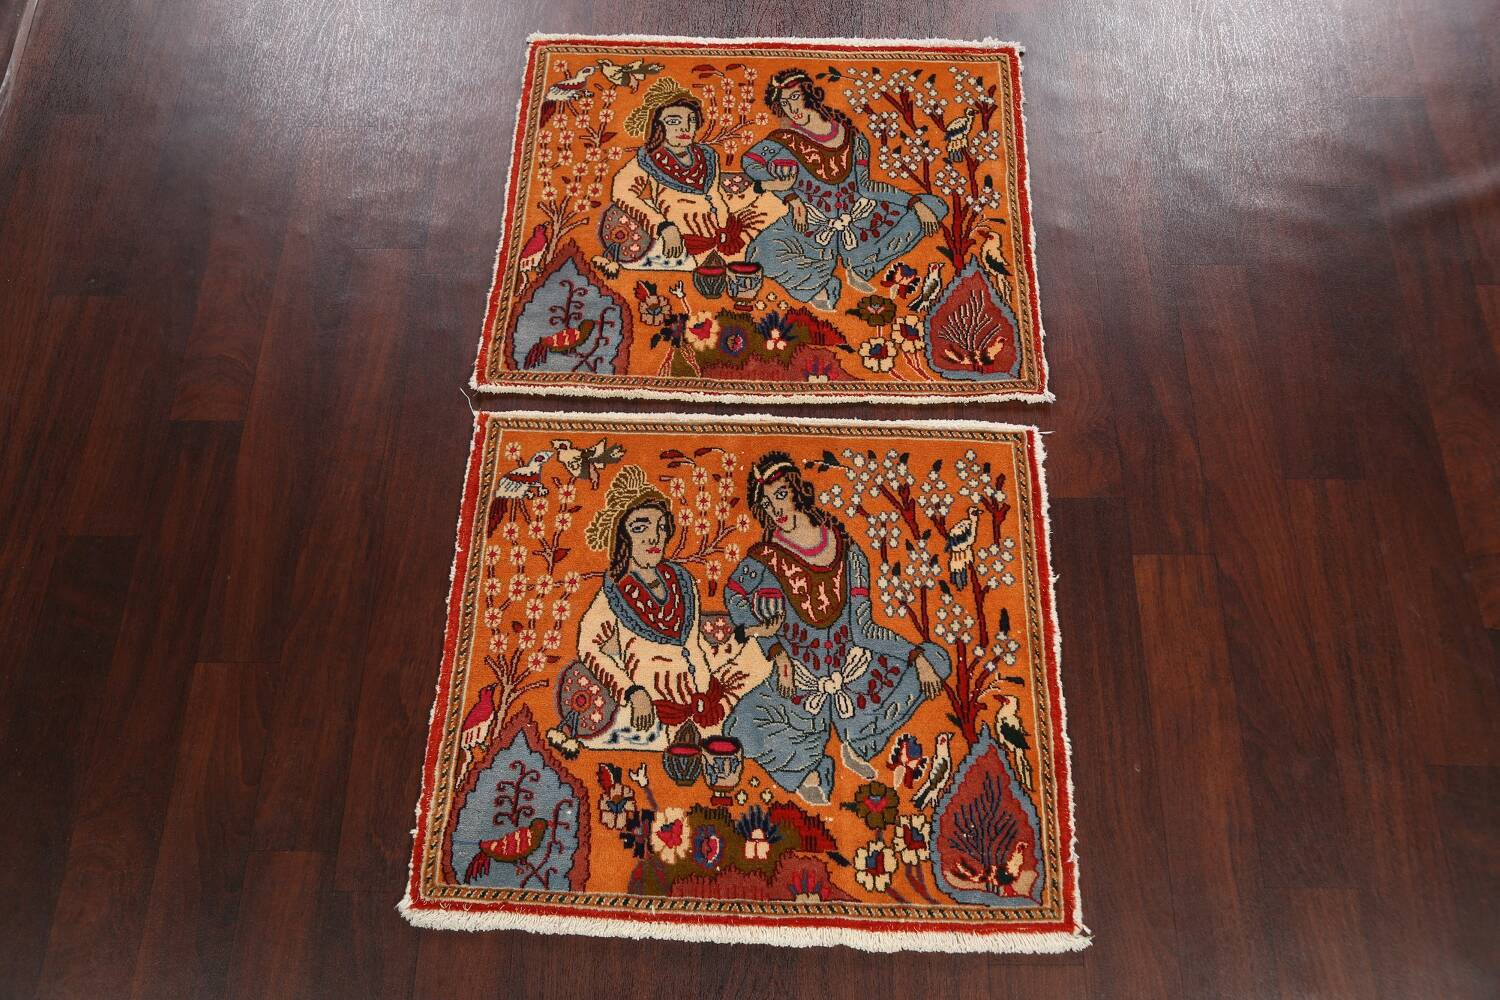 Pictorial Set of 2 Shiraz Persian Area Rugs 2x3 image 2